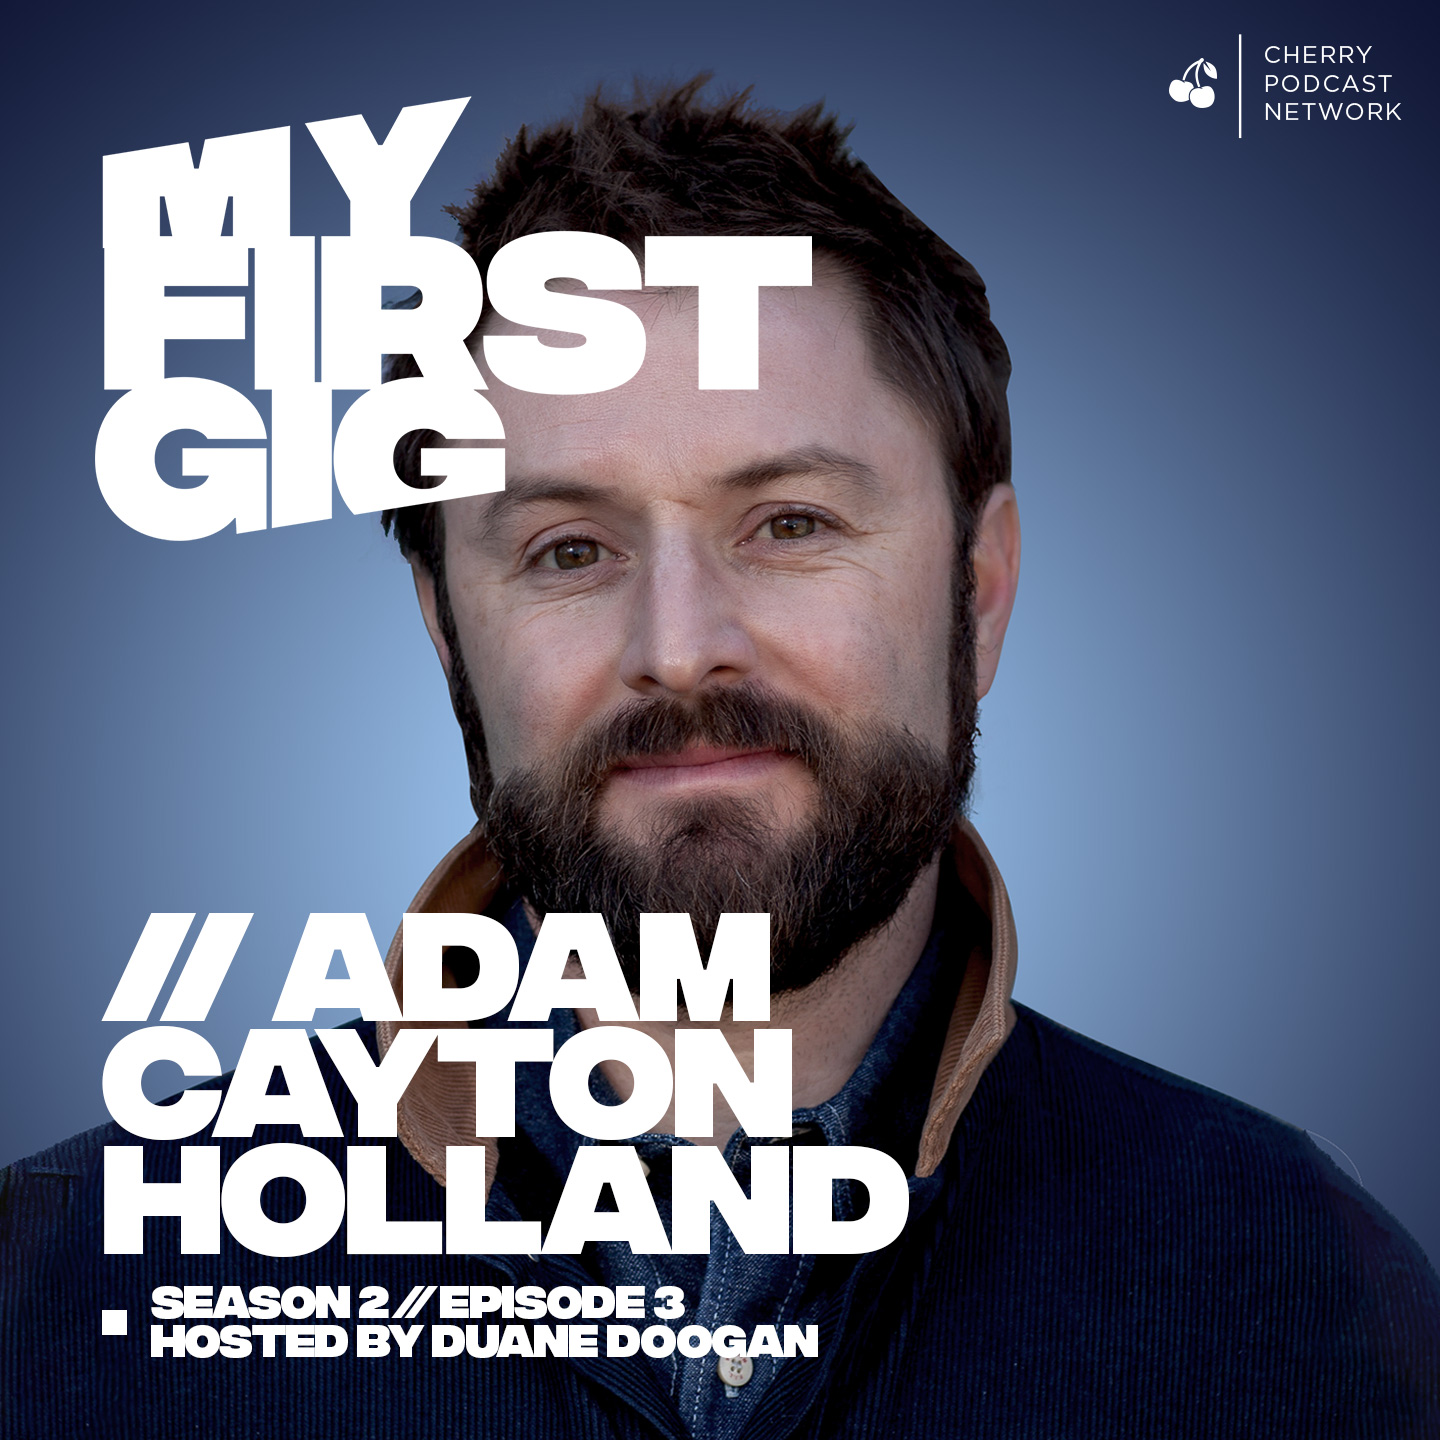 13. Adam Cayton-Holland